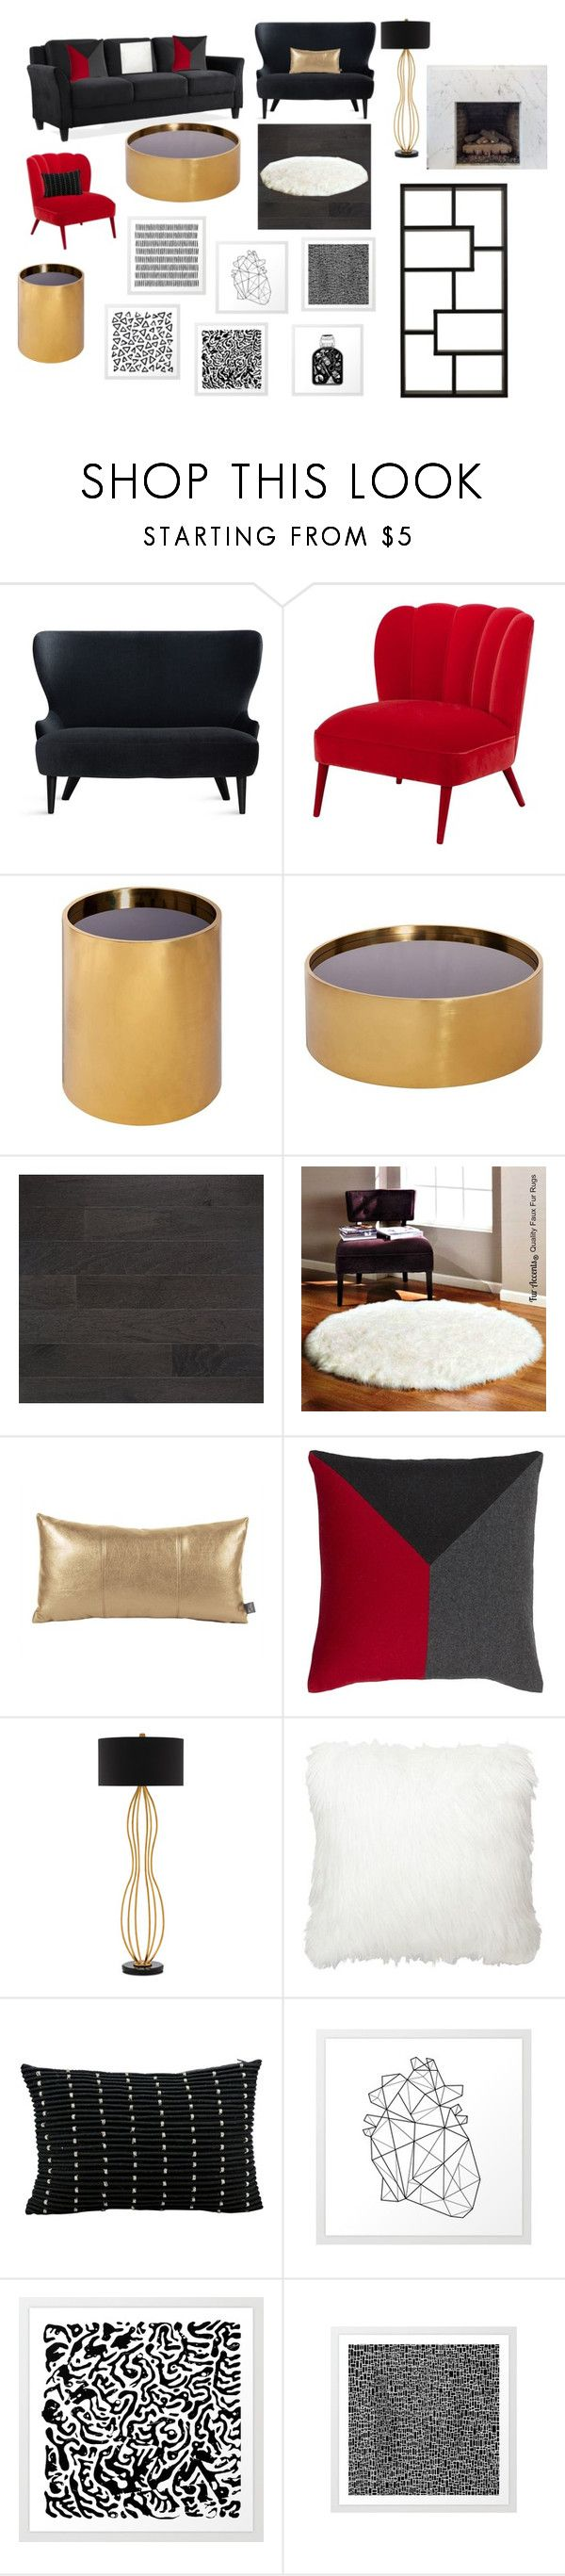 """""""living room"""" by langleypaige on Polyvore featuring interior, interiors, interior design, home, home decor, interior decorating, Tom Dixon, Jonathan Adler, Currey & Company and Sassa"""